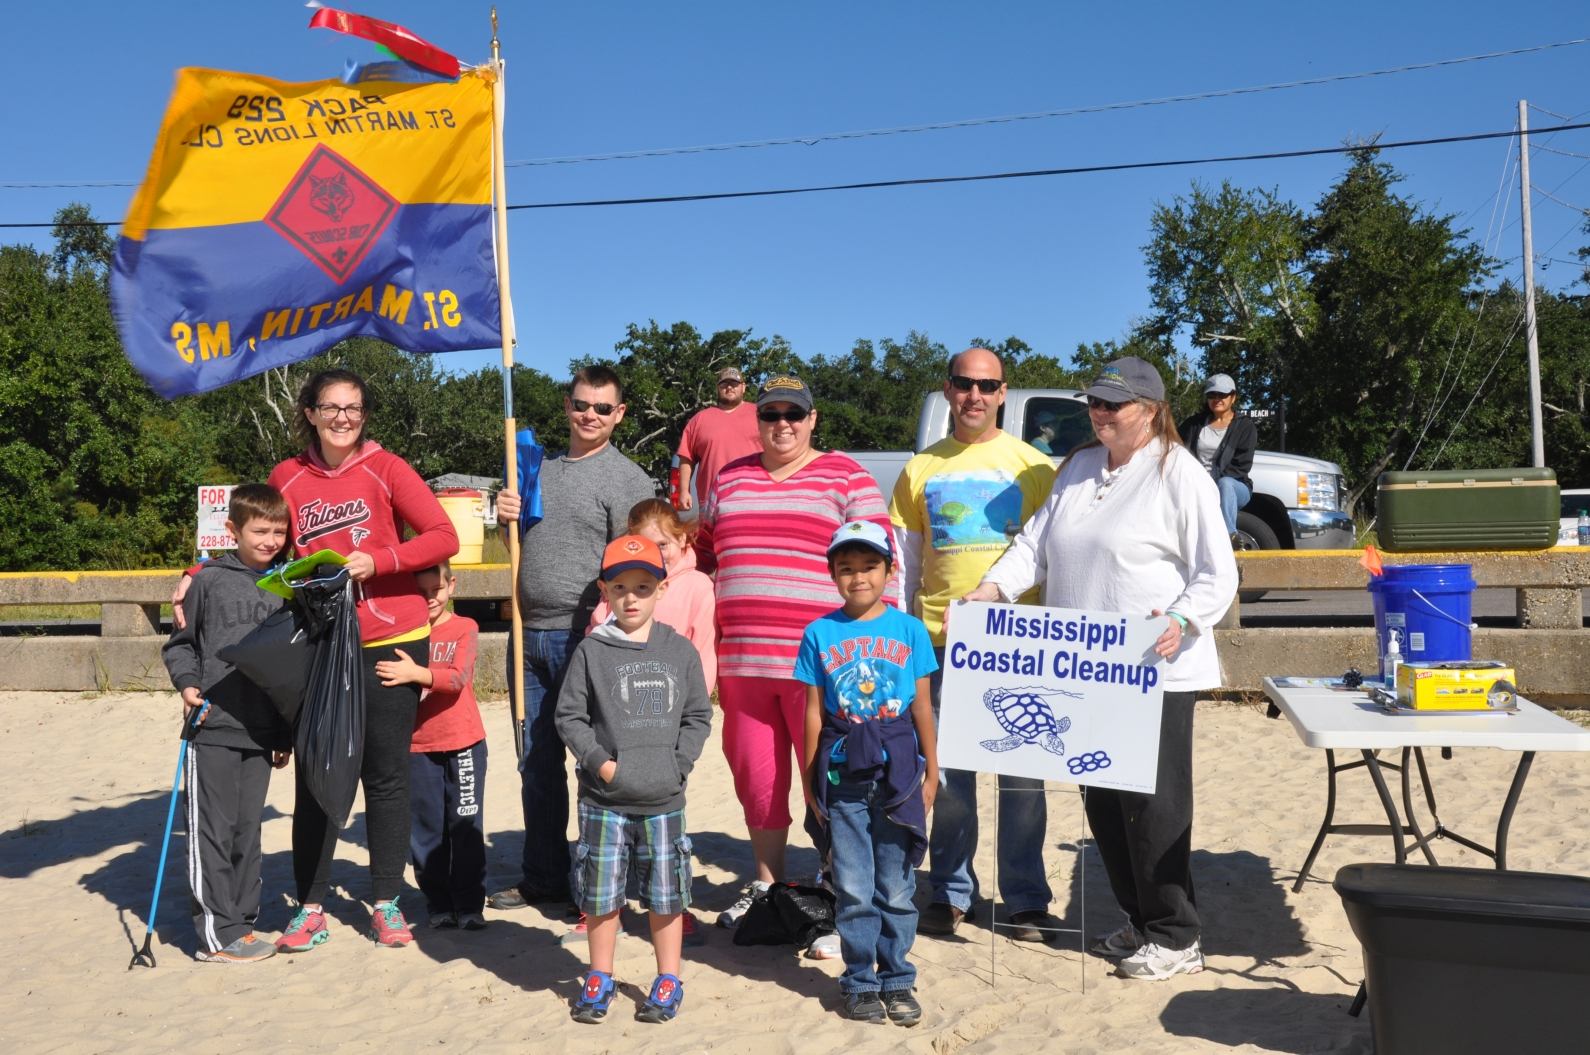 A group from St. Martin, Miss., poses for a photo during the 2016 Mississippi Coastal Cleanup event.